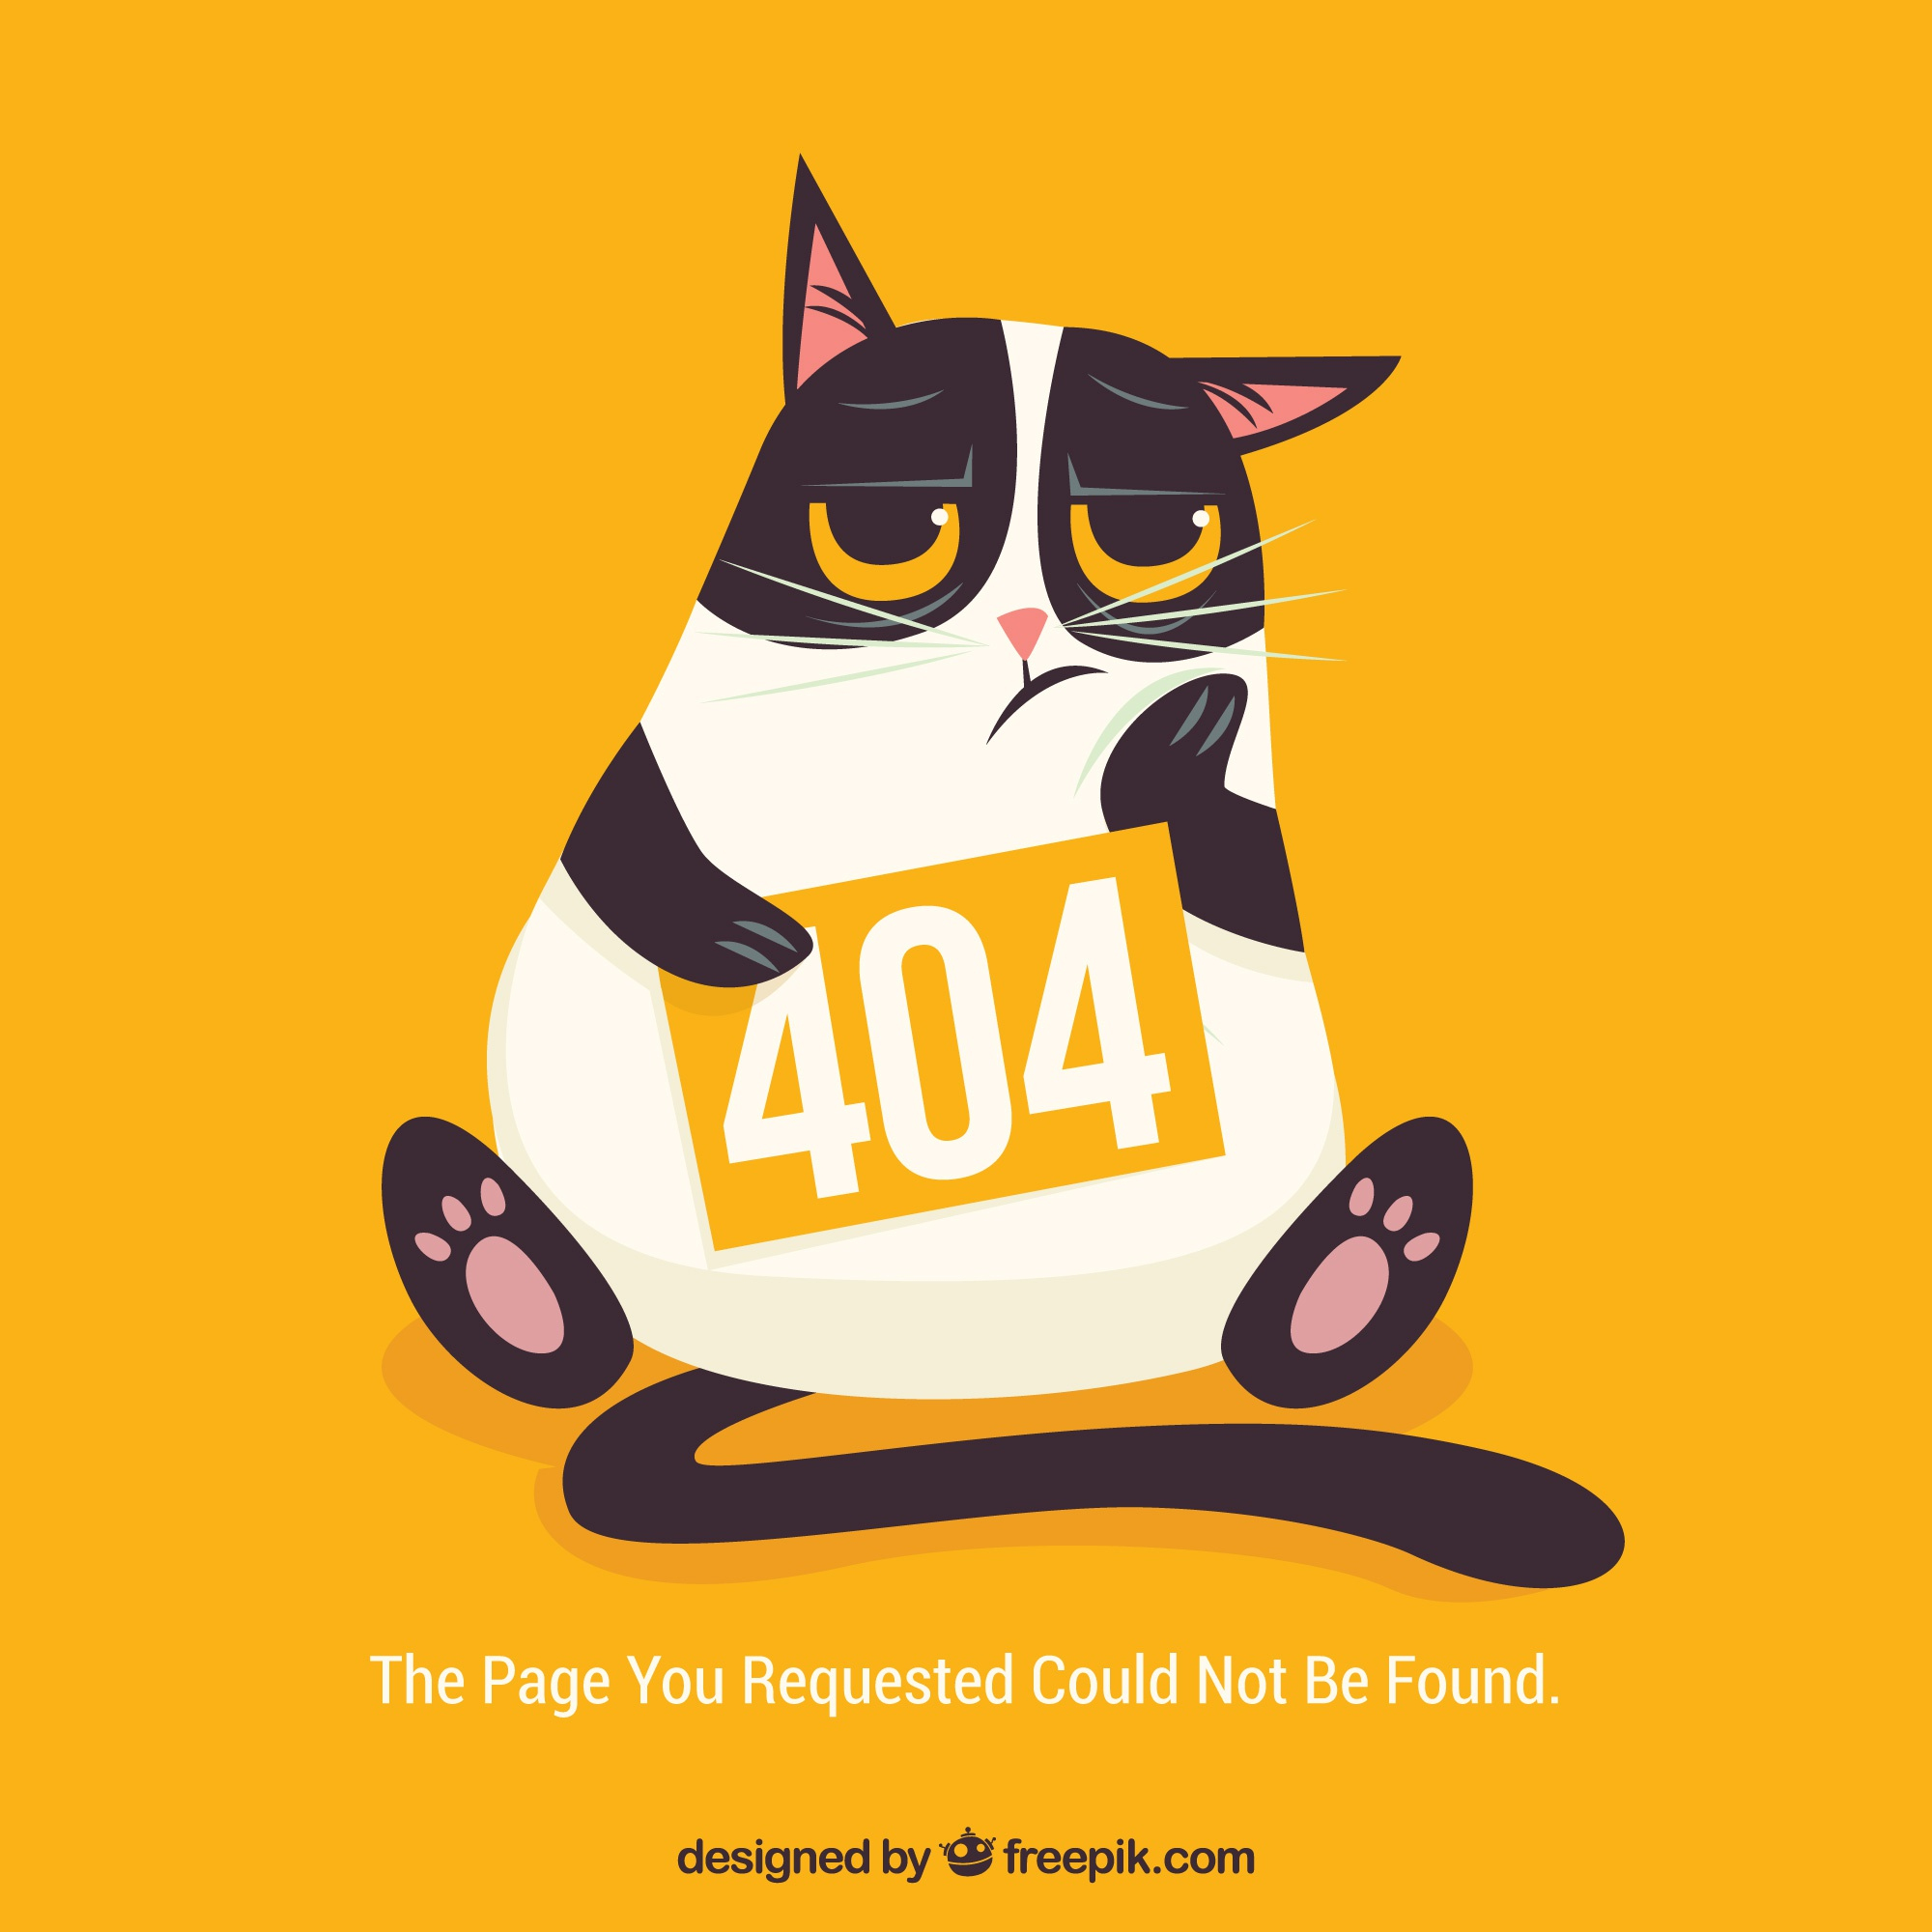 404 error web template with bored cat